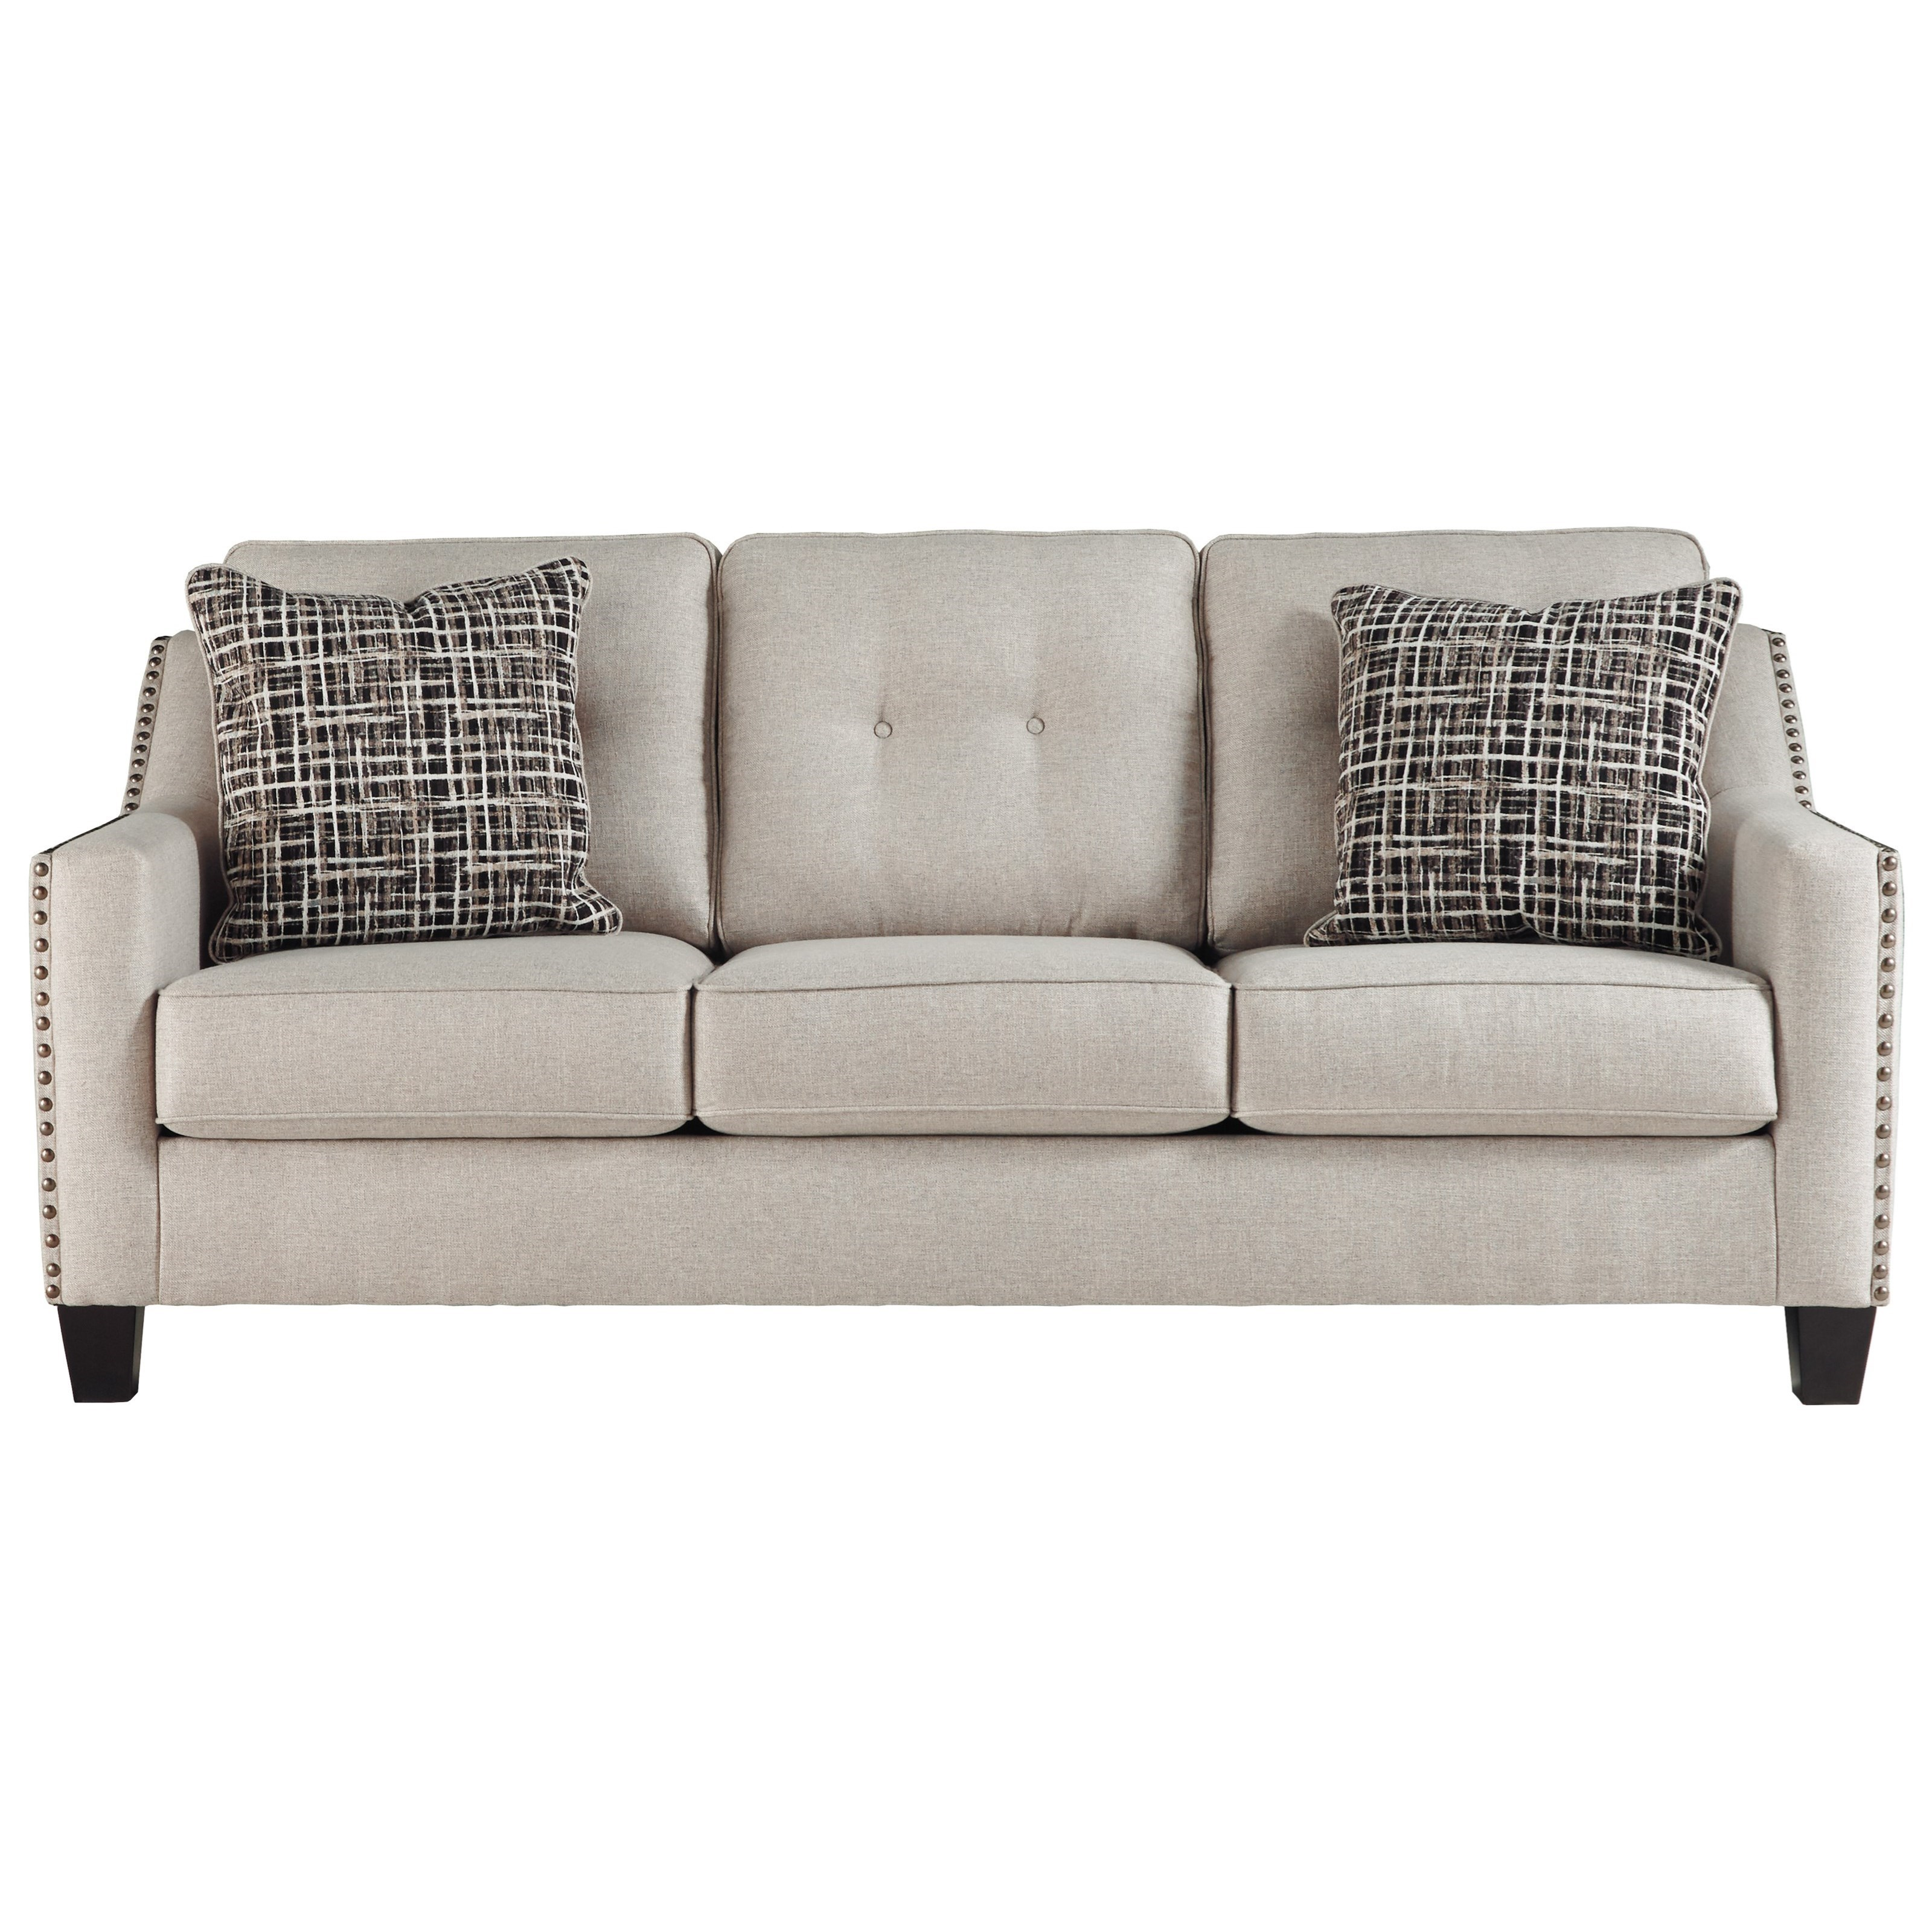 Benchcraft Marrero Sofa - Item Number: 2370238